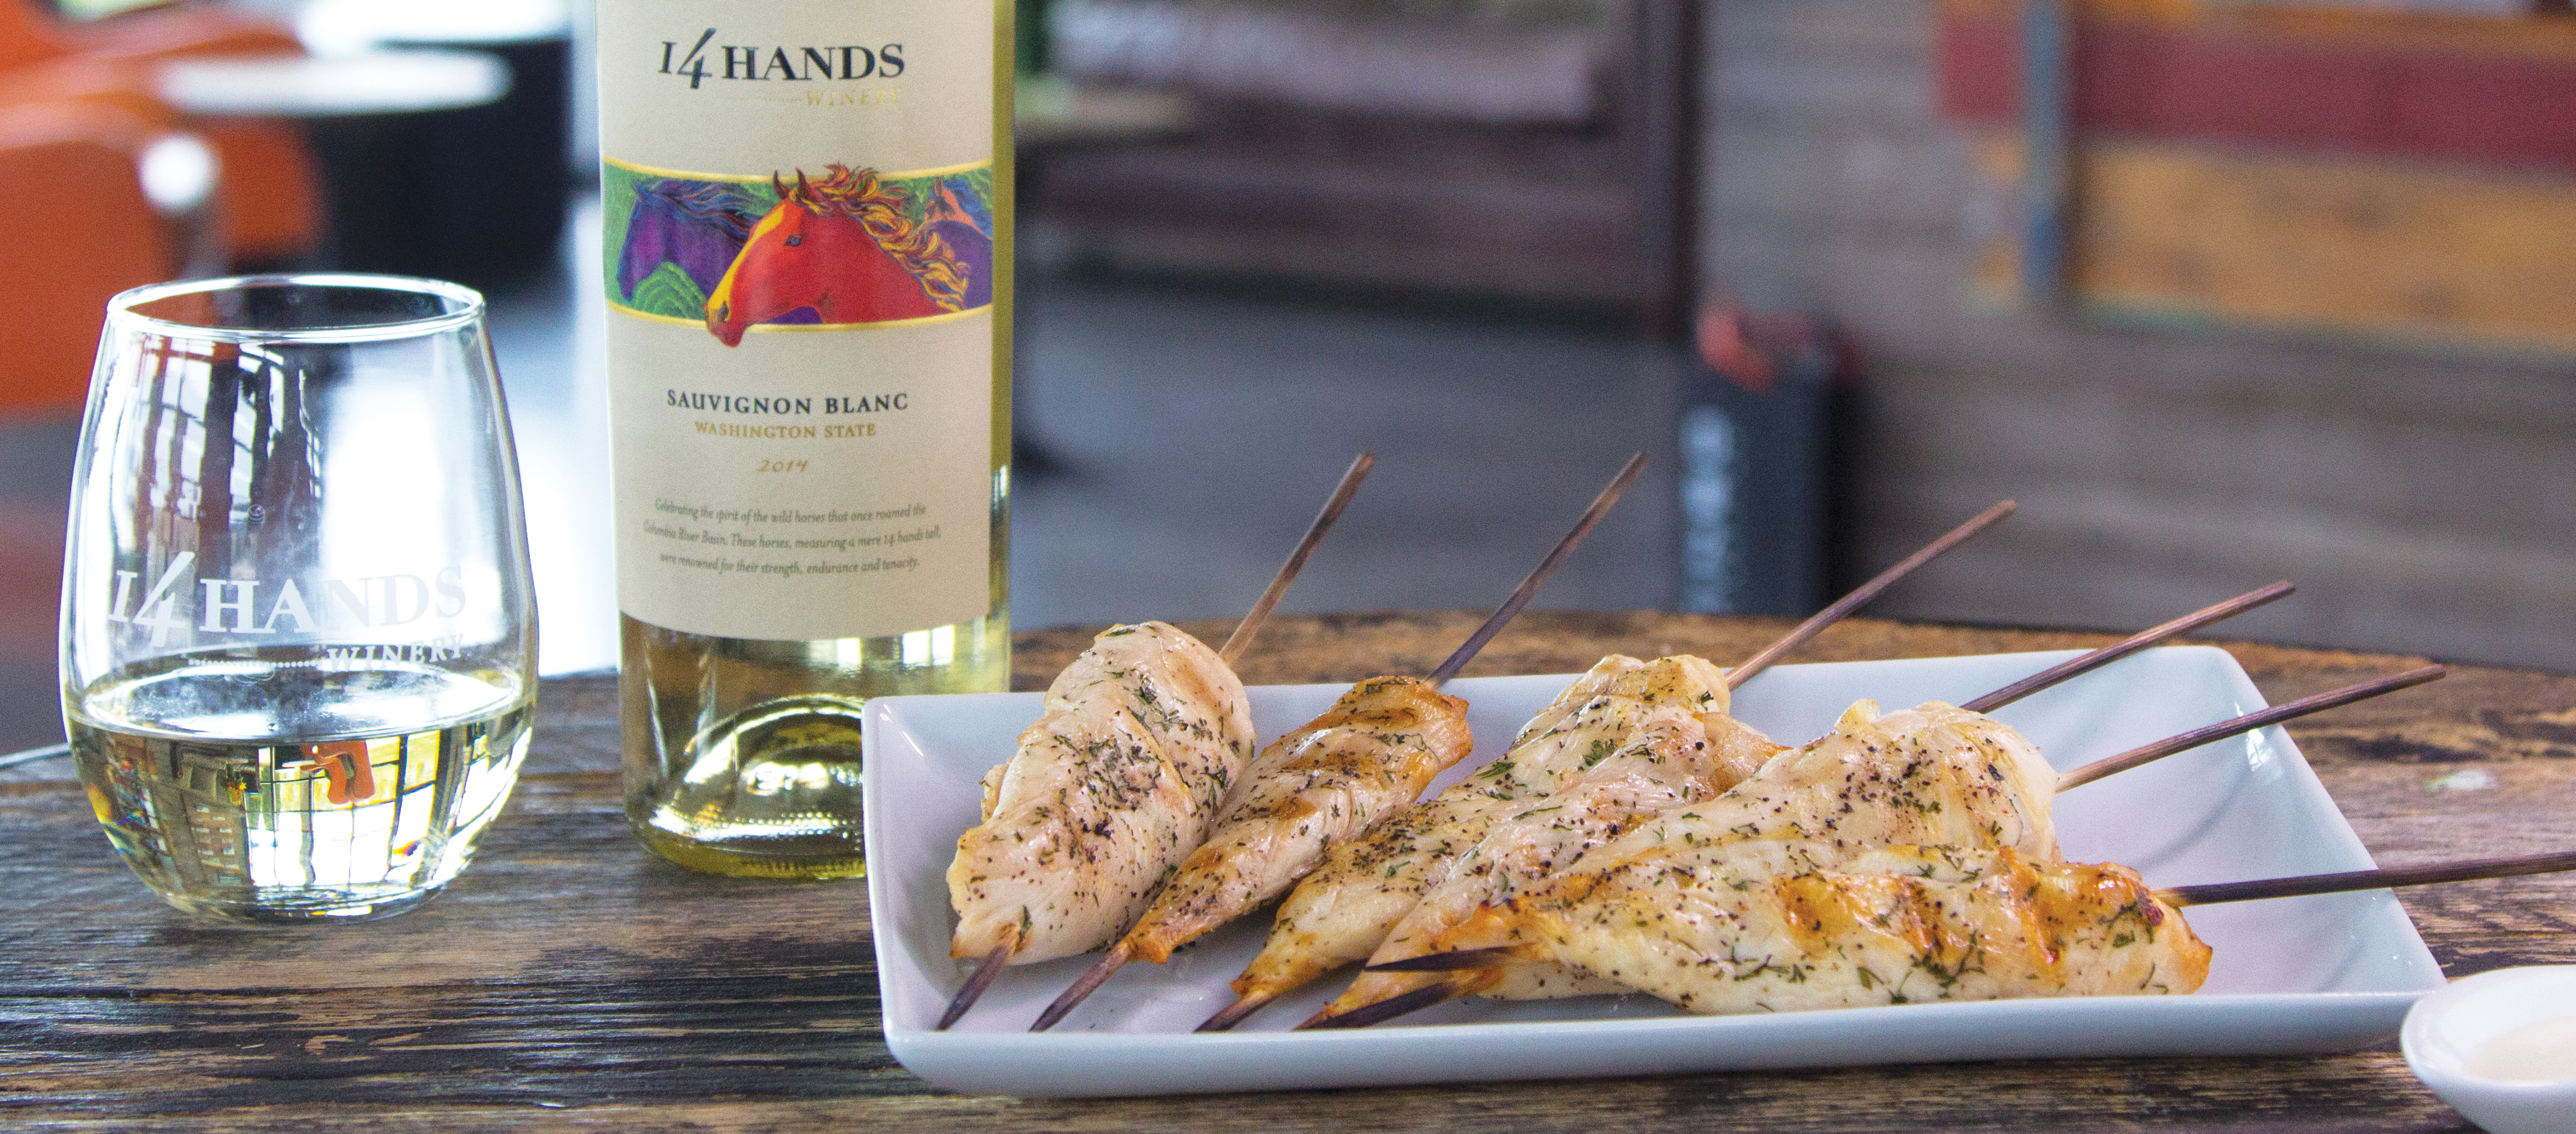 CHILLED CHICKEN SKEWERS WITH CITRUS SAUCE